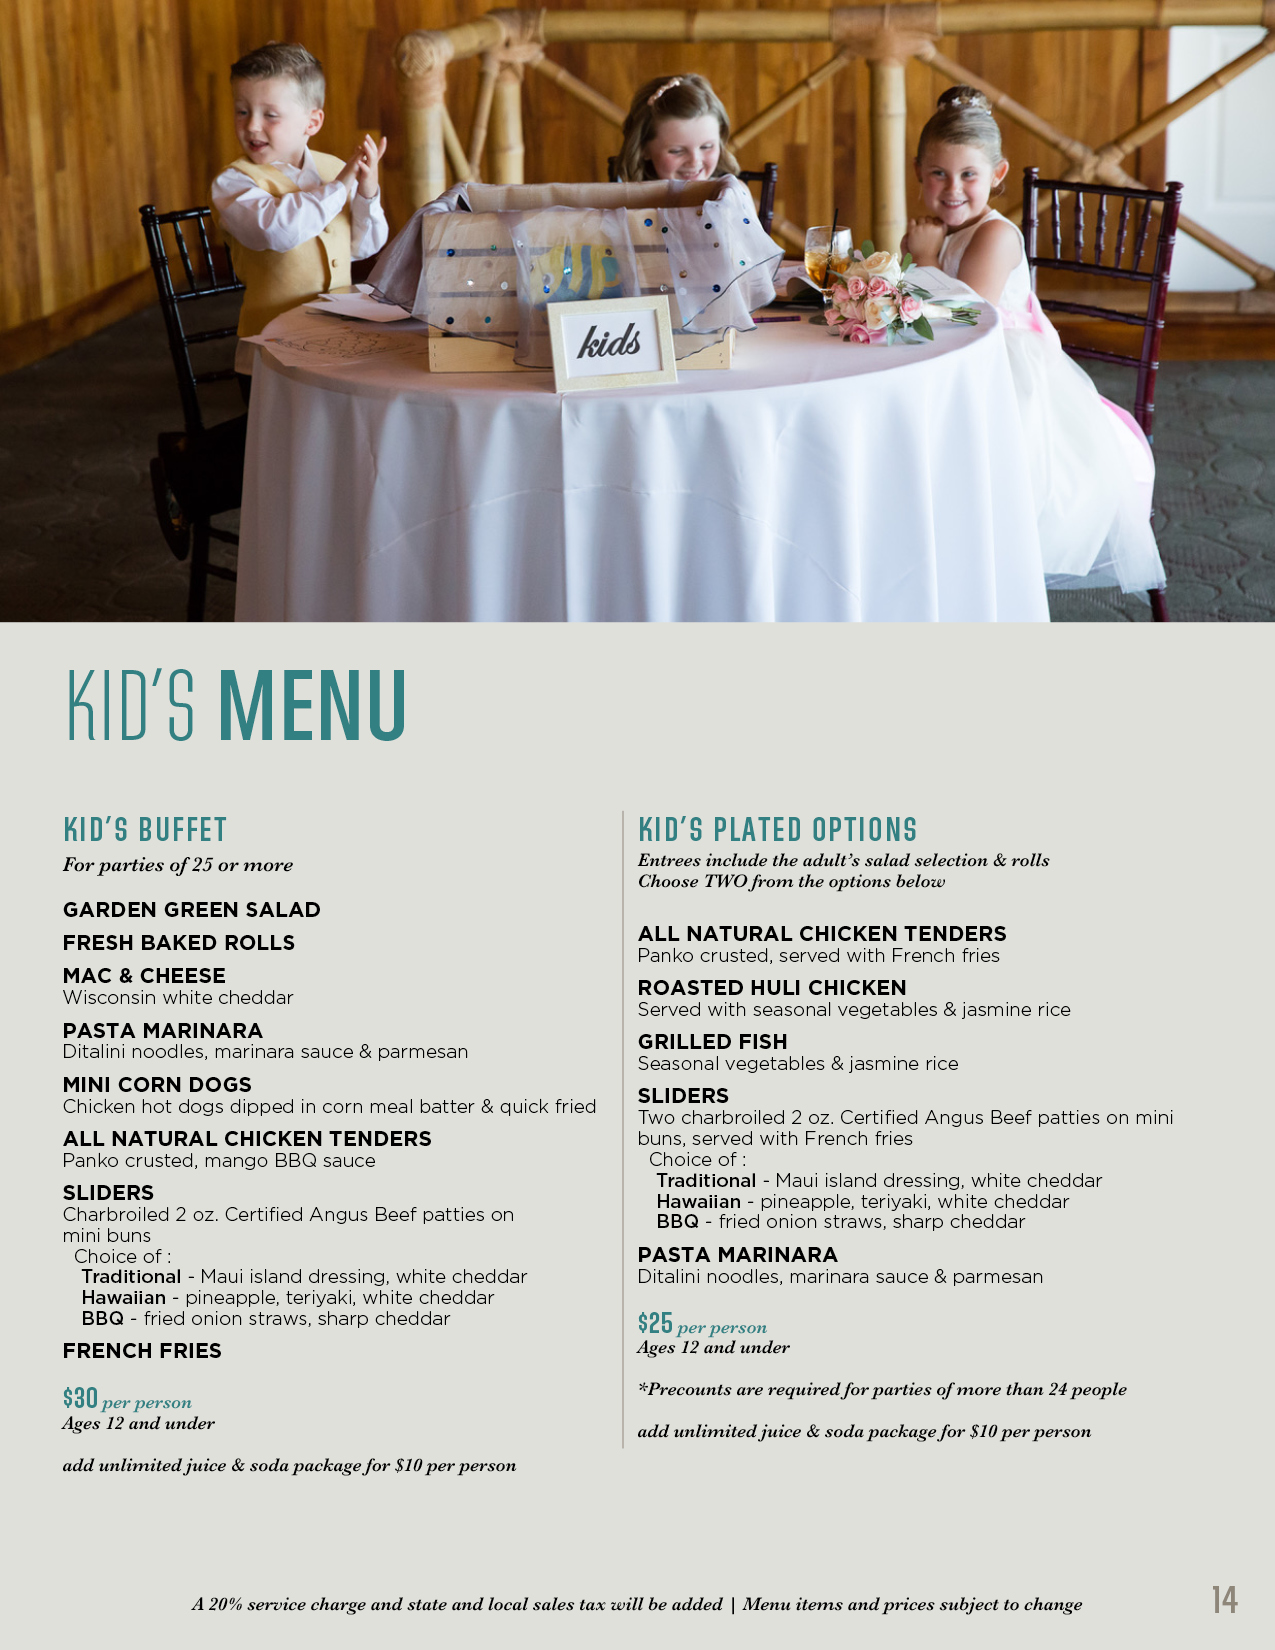 Kids menu for events